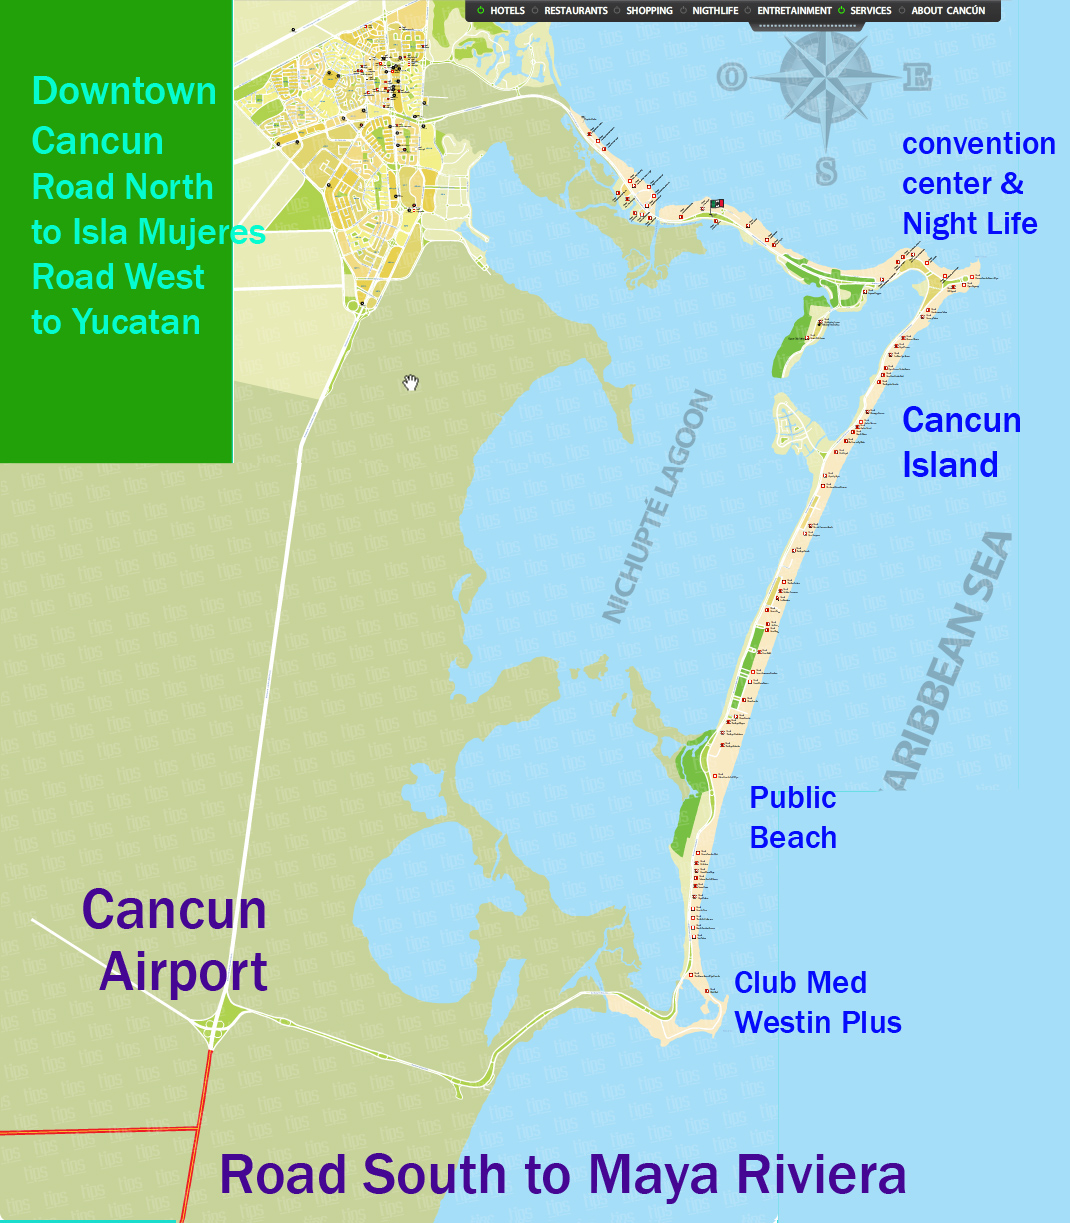 Travel Cancun. OSEA The Open of Ethnogrpahy and ... on playa del carmen map, cancun terminal 3 map, cancun mexico, cancun to merida map, cancun ruins, cancun on the map, cancun restaurant map, cancun flights, downtown cancun map, cancun terminal 3 arrivals, westin cancun map, cancun map and attractions, cancun world map, cancun clubs, cancun points of interest map, cancun strip, cancun and vicinity map, cancun weather,